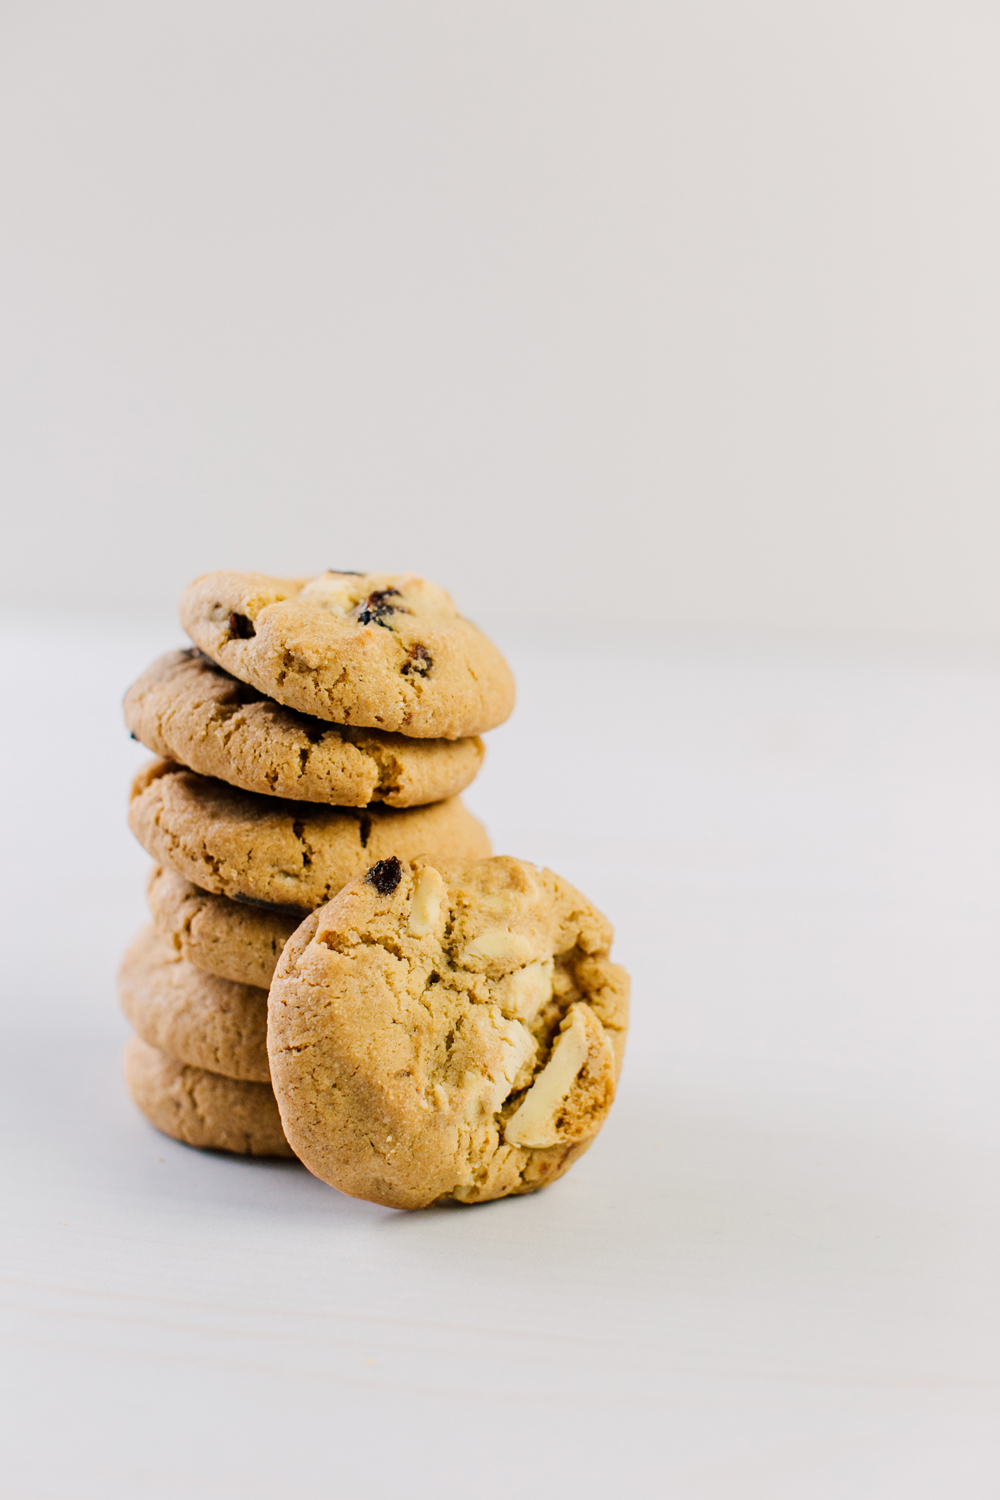 010-bellingham-food-studio-photographer-katheryn-moran-antoninas-cookies-2018.jpg